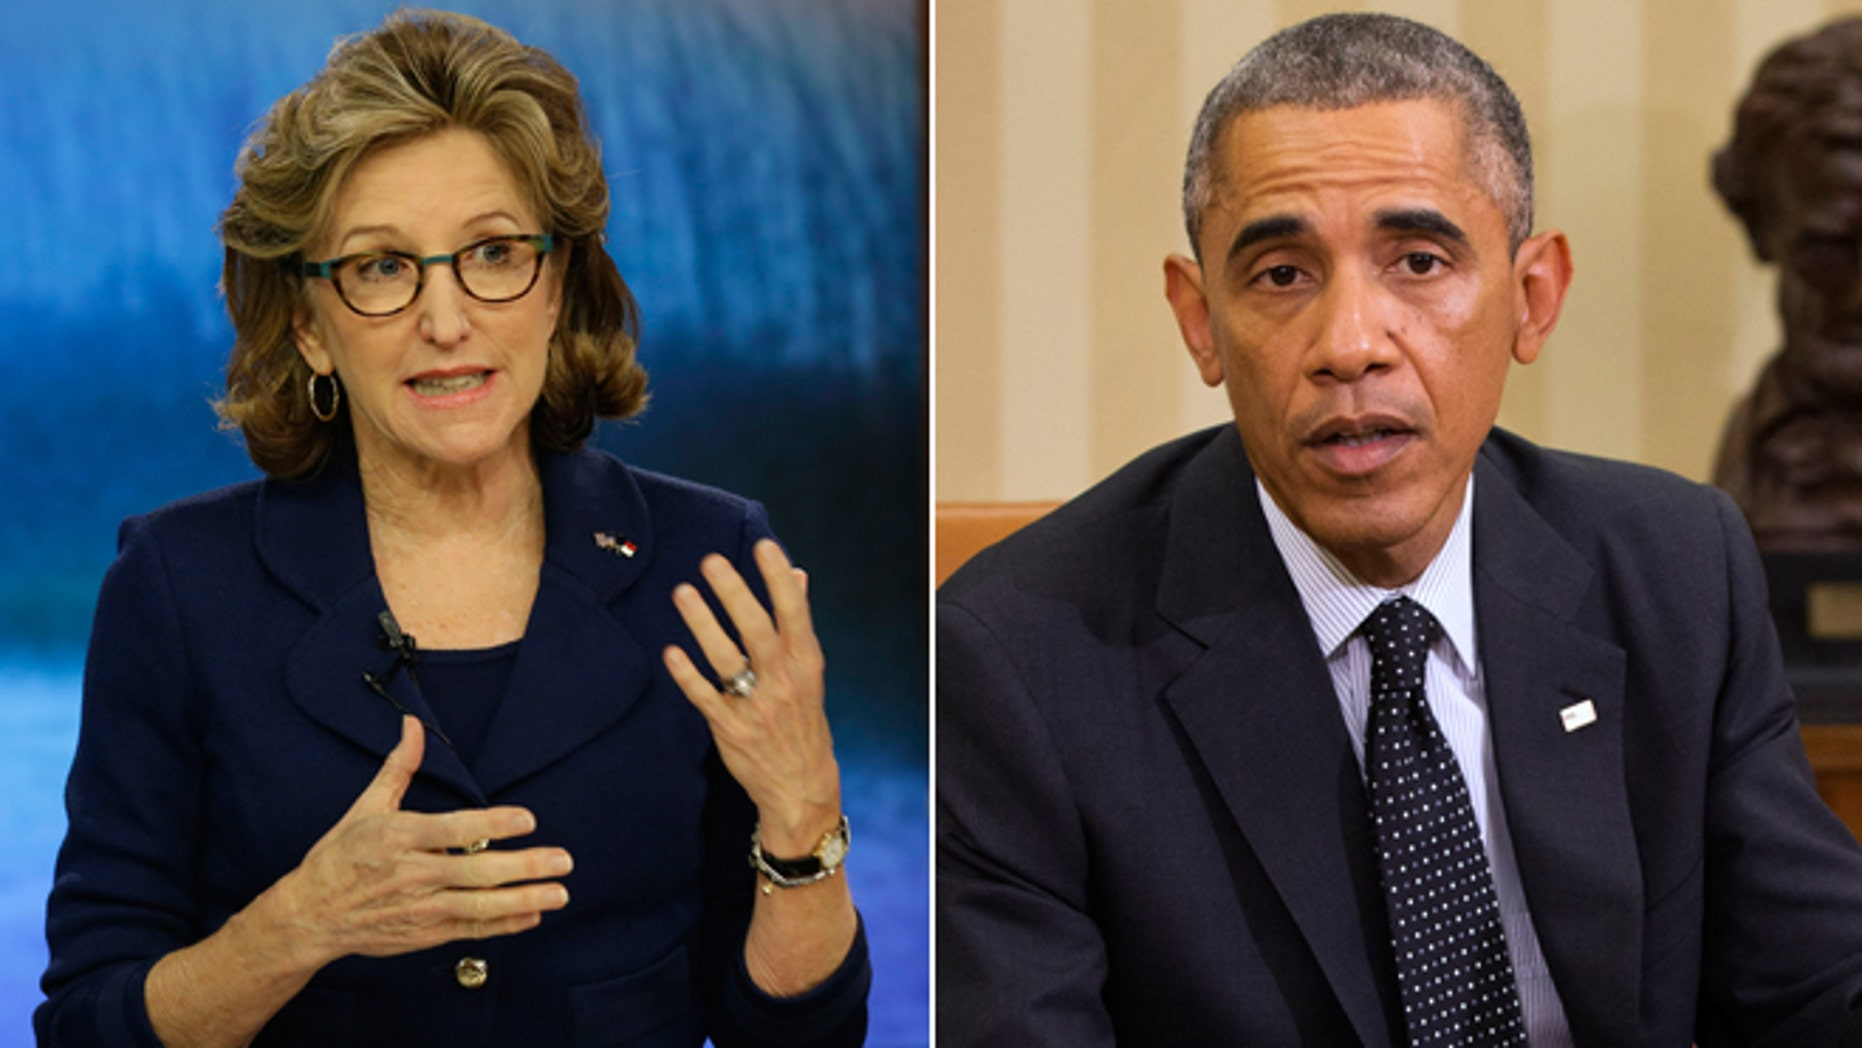 In this Thursday, Oct. 9, 2014 photo, Sen. Kay Hagan, D-N.C., speaks during a debate in Wilmington, N.C., and in this Wednesday Oct. 22, 2014 photo, President Barack Obama speaks to the media in the Oval Office of the White House in Washington.